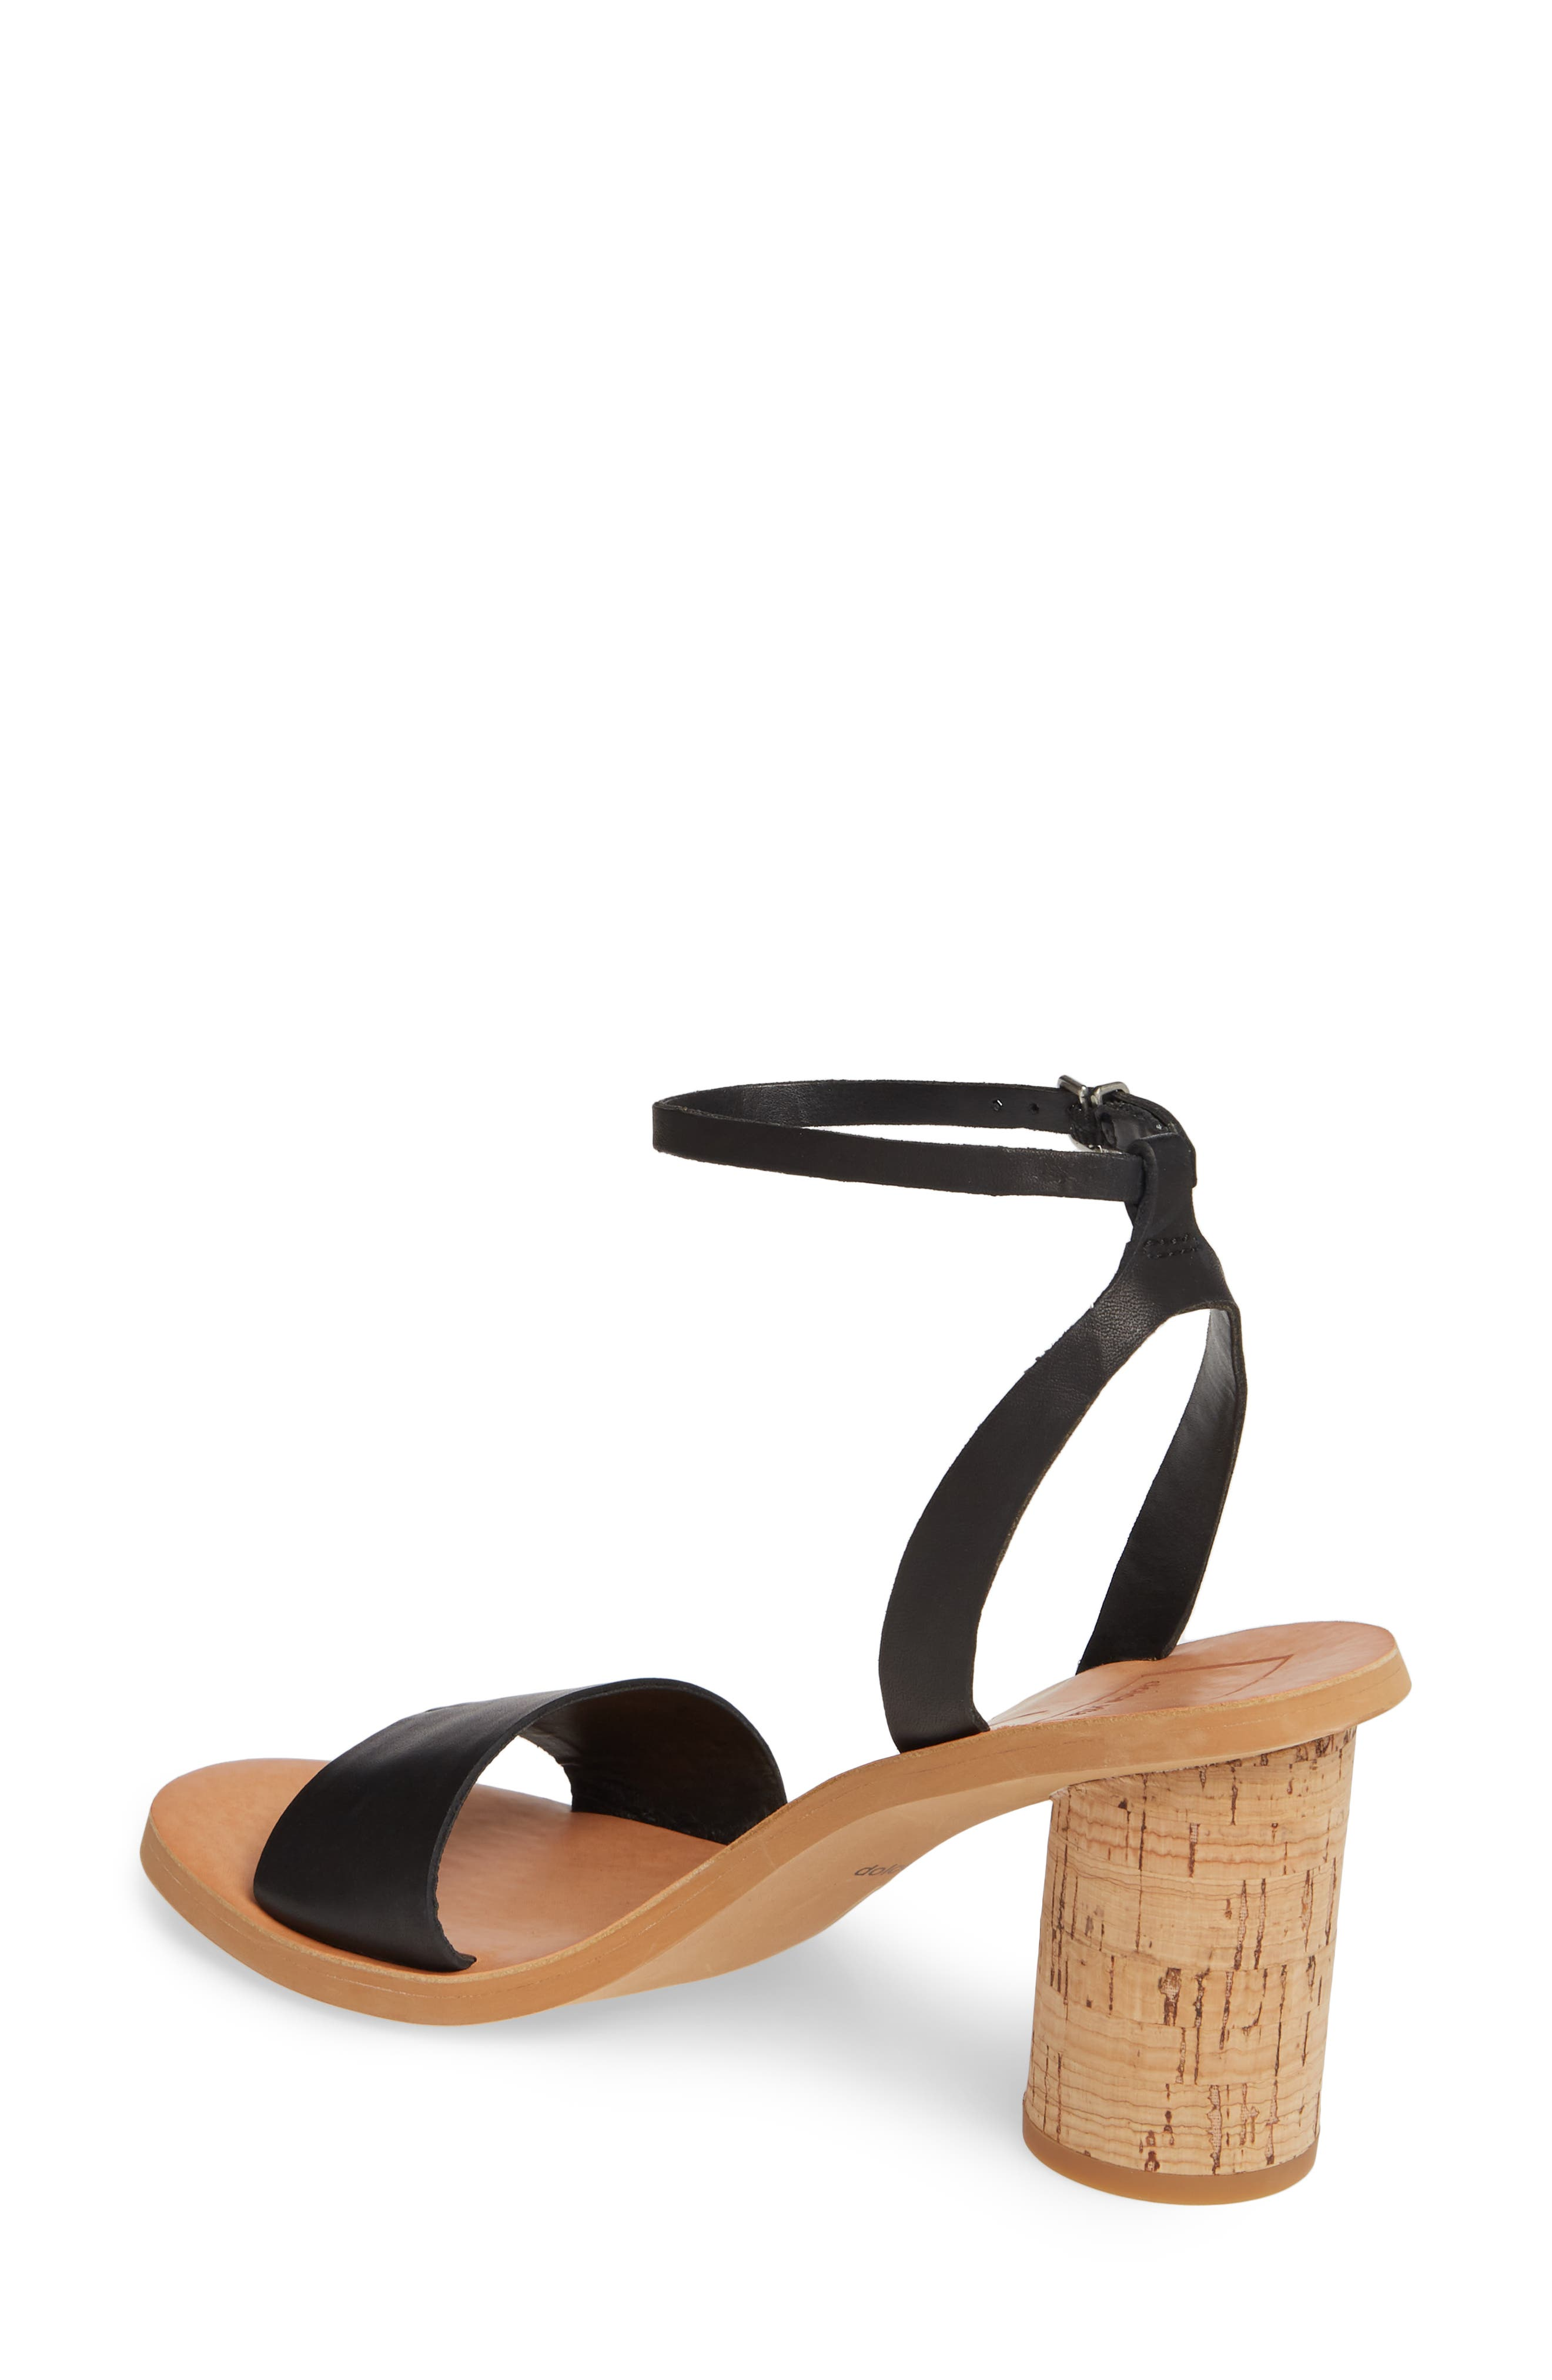 DOLCE VITA, Jali Column Heel Sandal, Alternate thumbnail 2, color, BLACK LEATHER